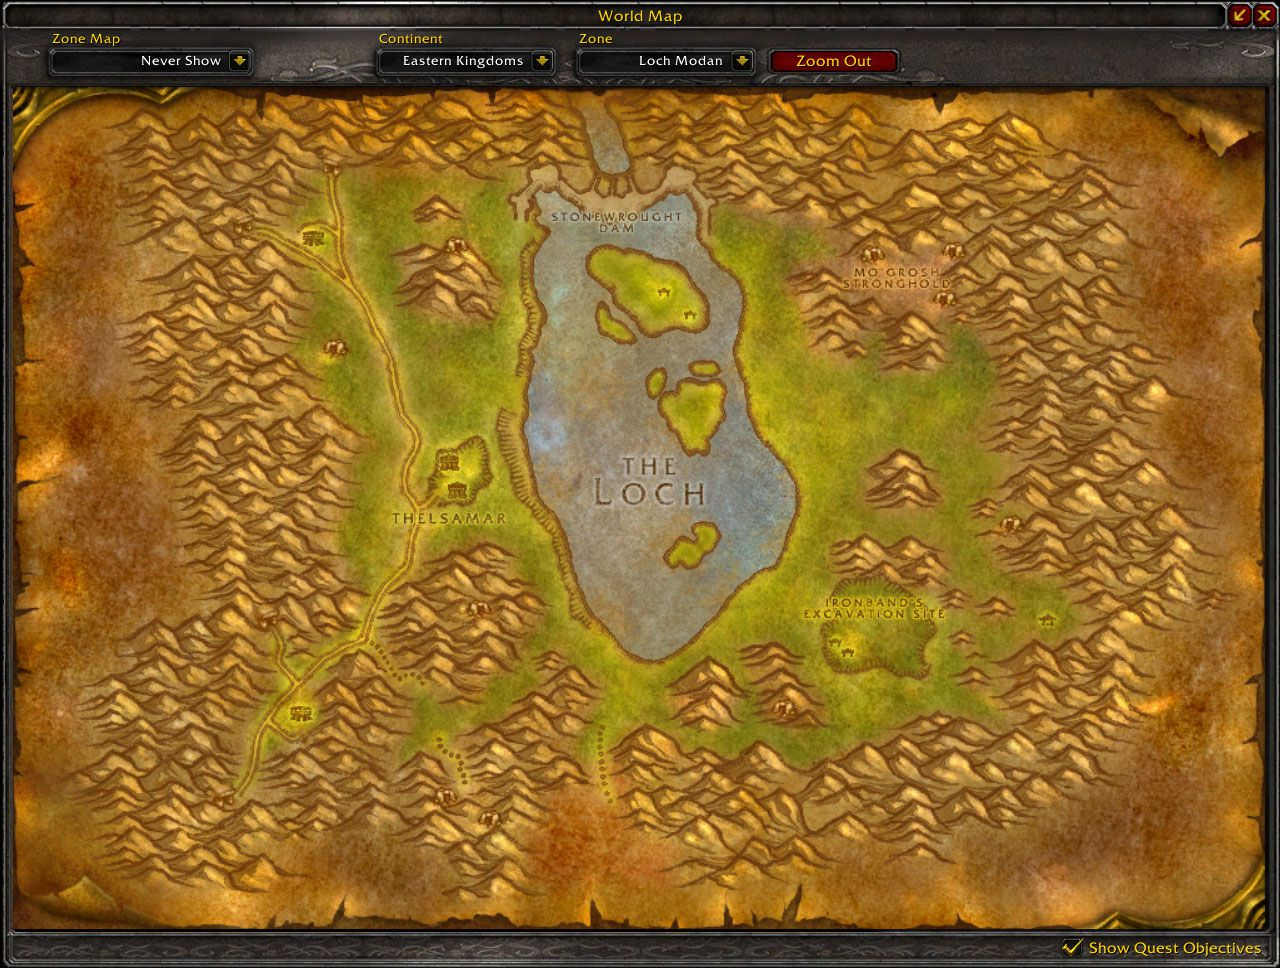 download map warcraft with Loch Modan Map 5361 on Icecrown Citadel In Minecraft Alpha Wip likewise Crafting azeroth wow map v10 released over 2x the as well World Map Typography Wallpaper 3660 together with Showthread besides Video games minecraft castle.